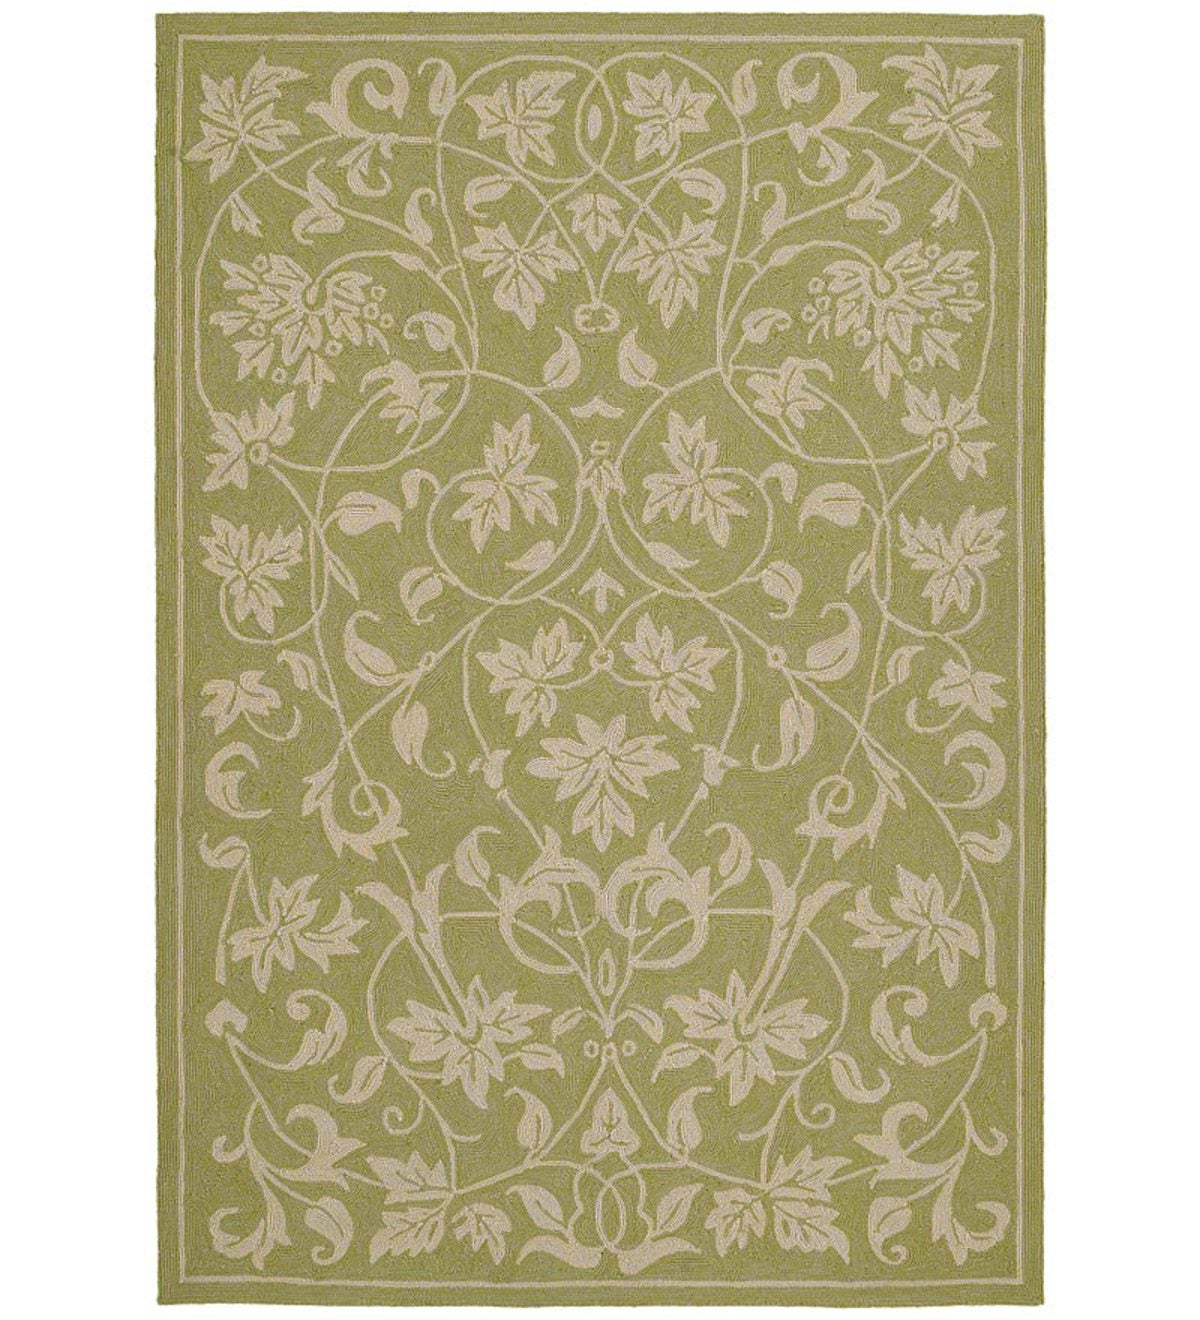 "7'6""x 9' Presley Scrolled Leaf Indoor/Outdoor Polypropylene Rug - Celery"